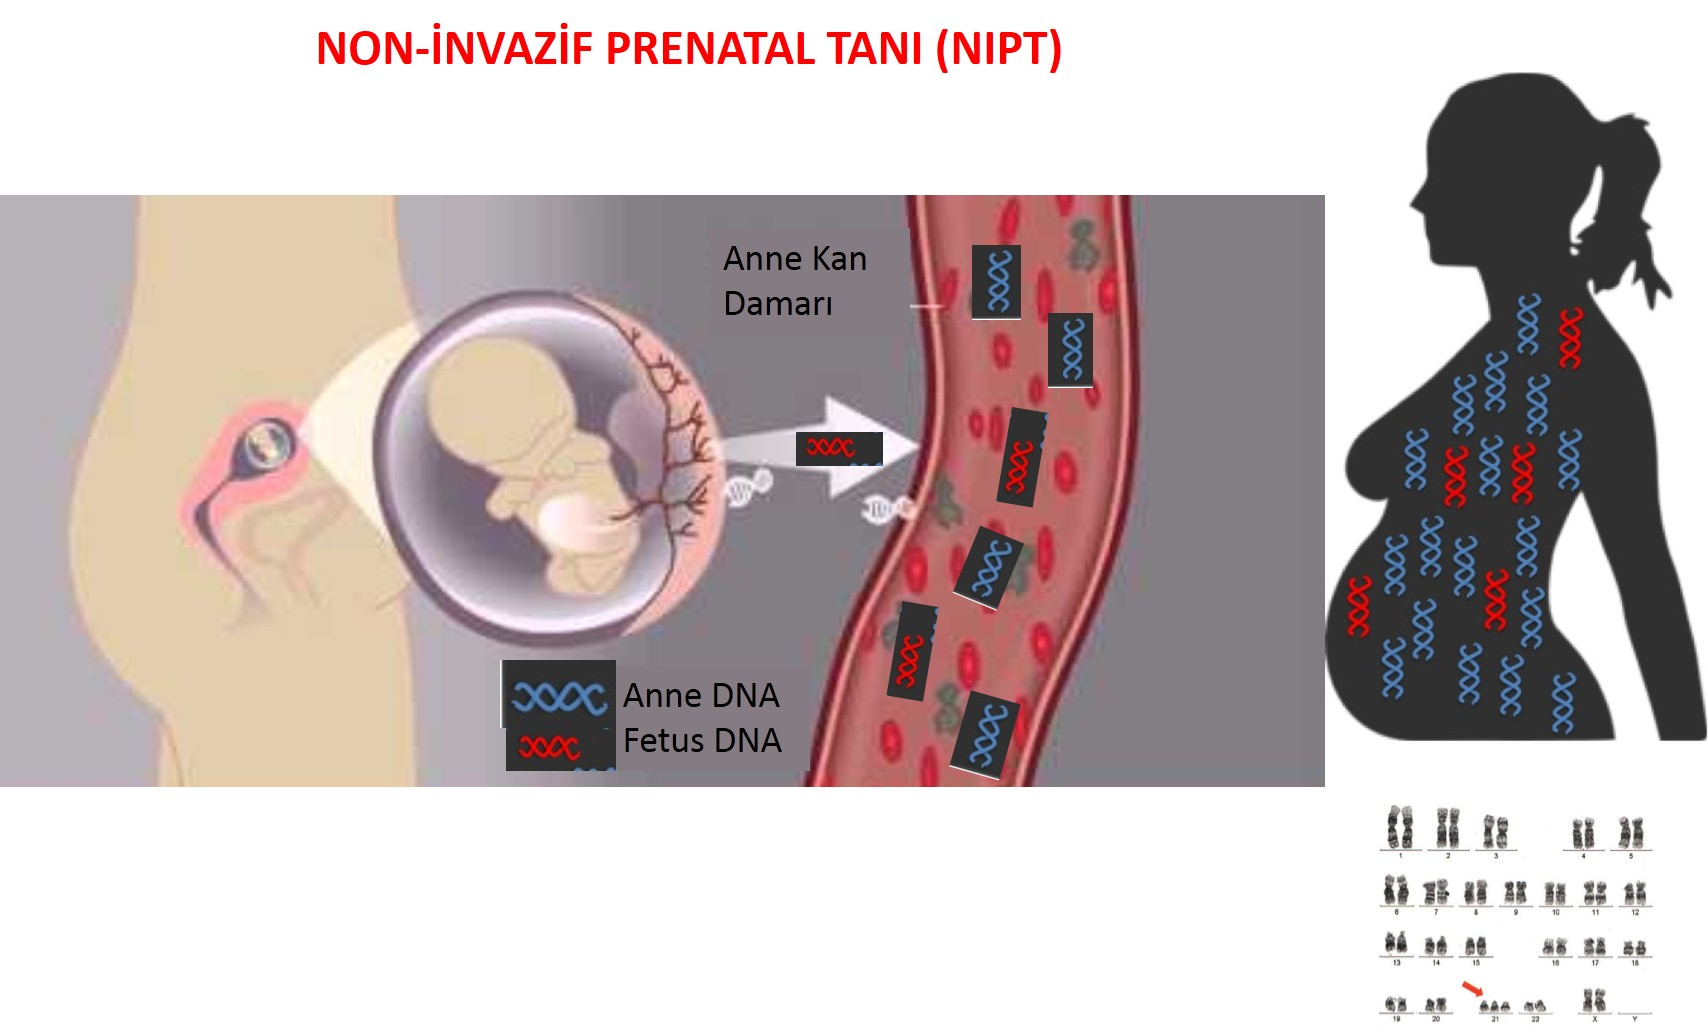 NON INVASIVE PRENATAL TEST (NIPT)